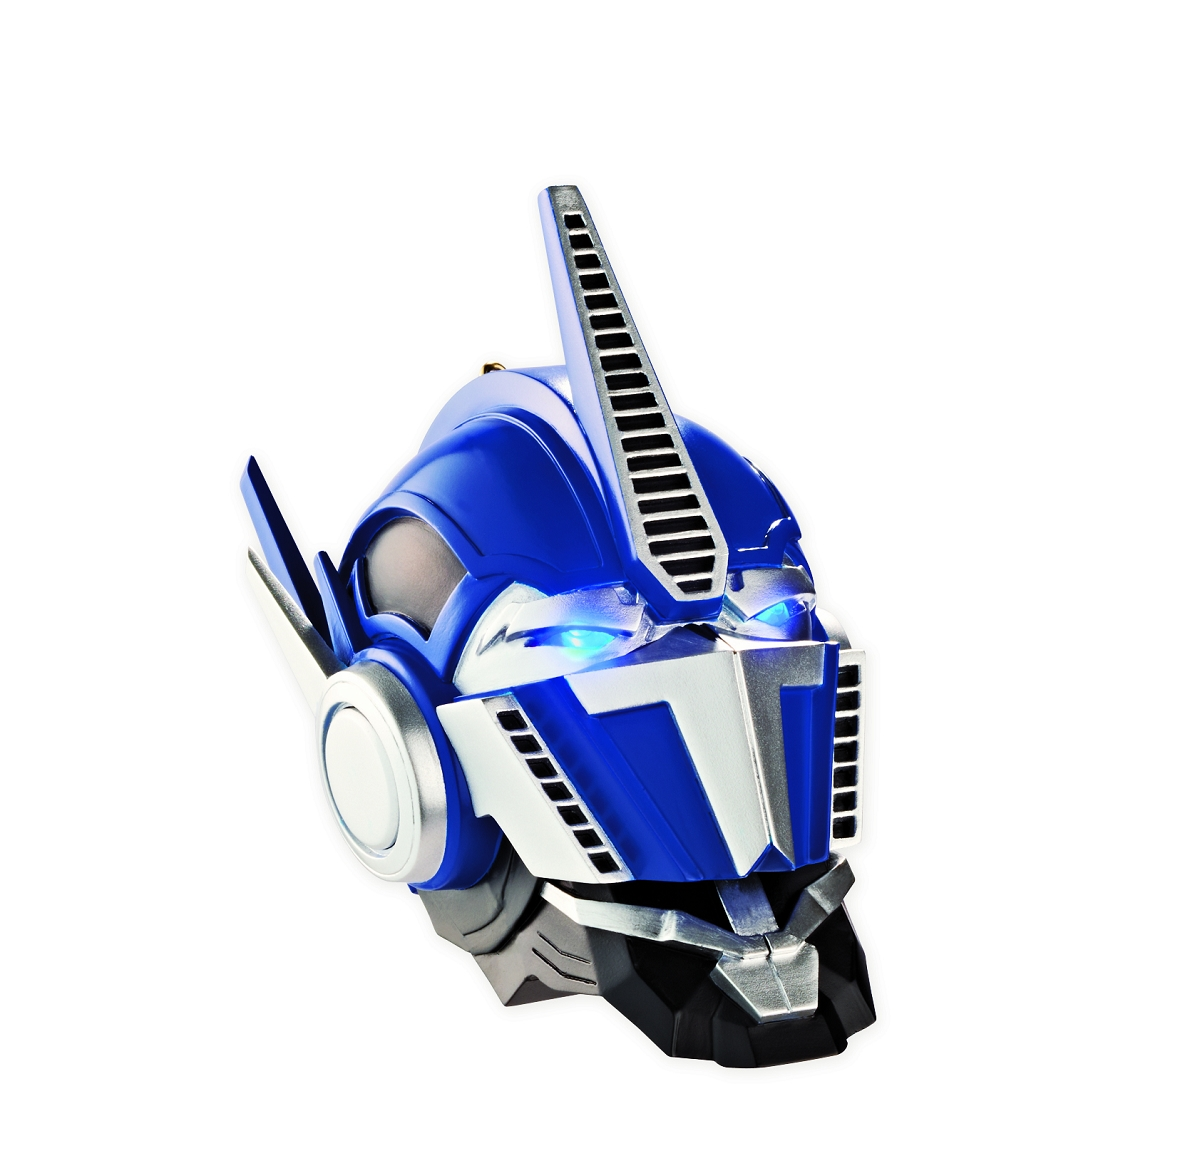 Transformers Prime Optimus Prime Ornament Revealed for 2013 Holiday Season